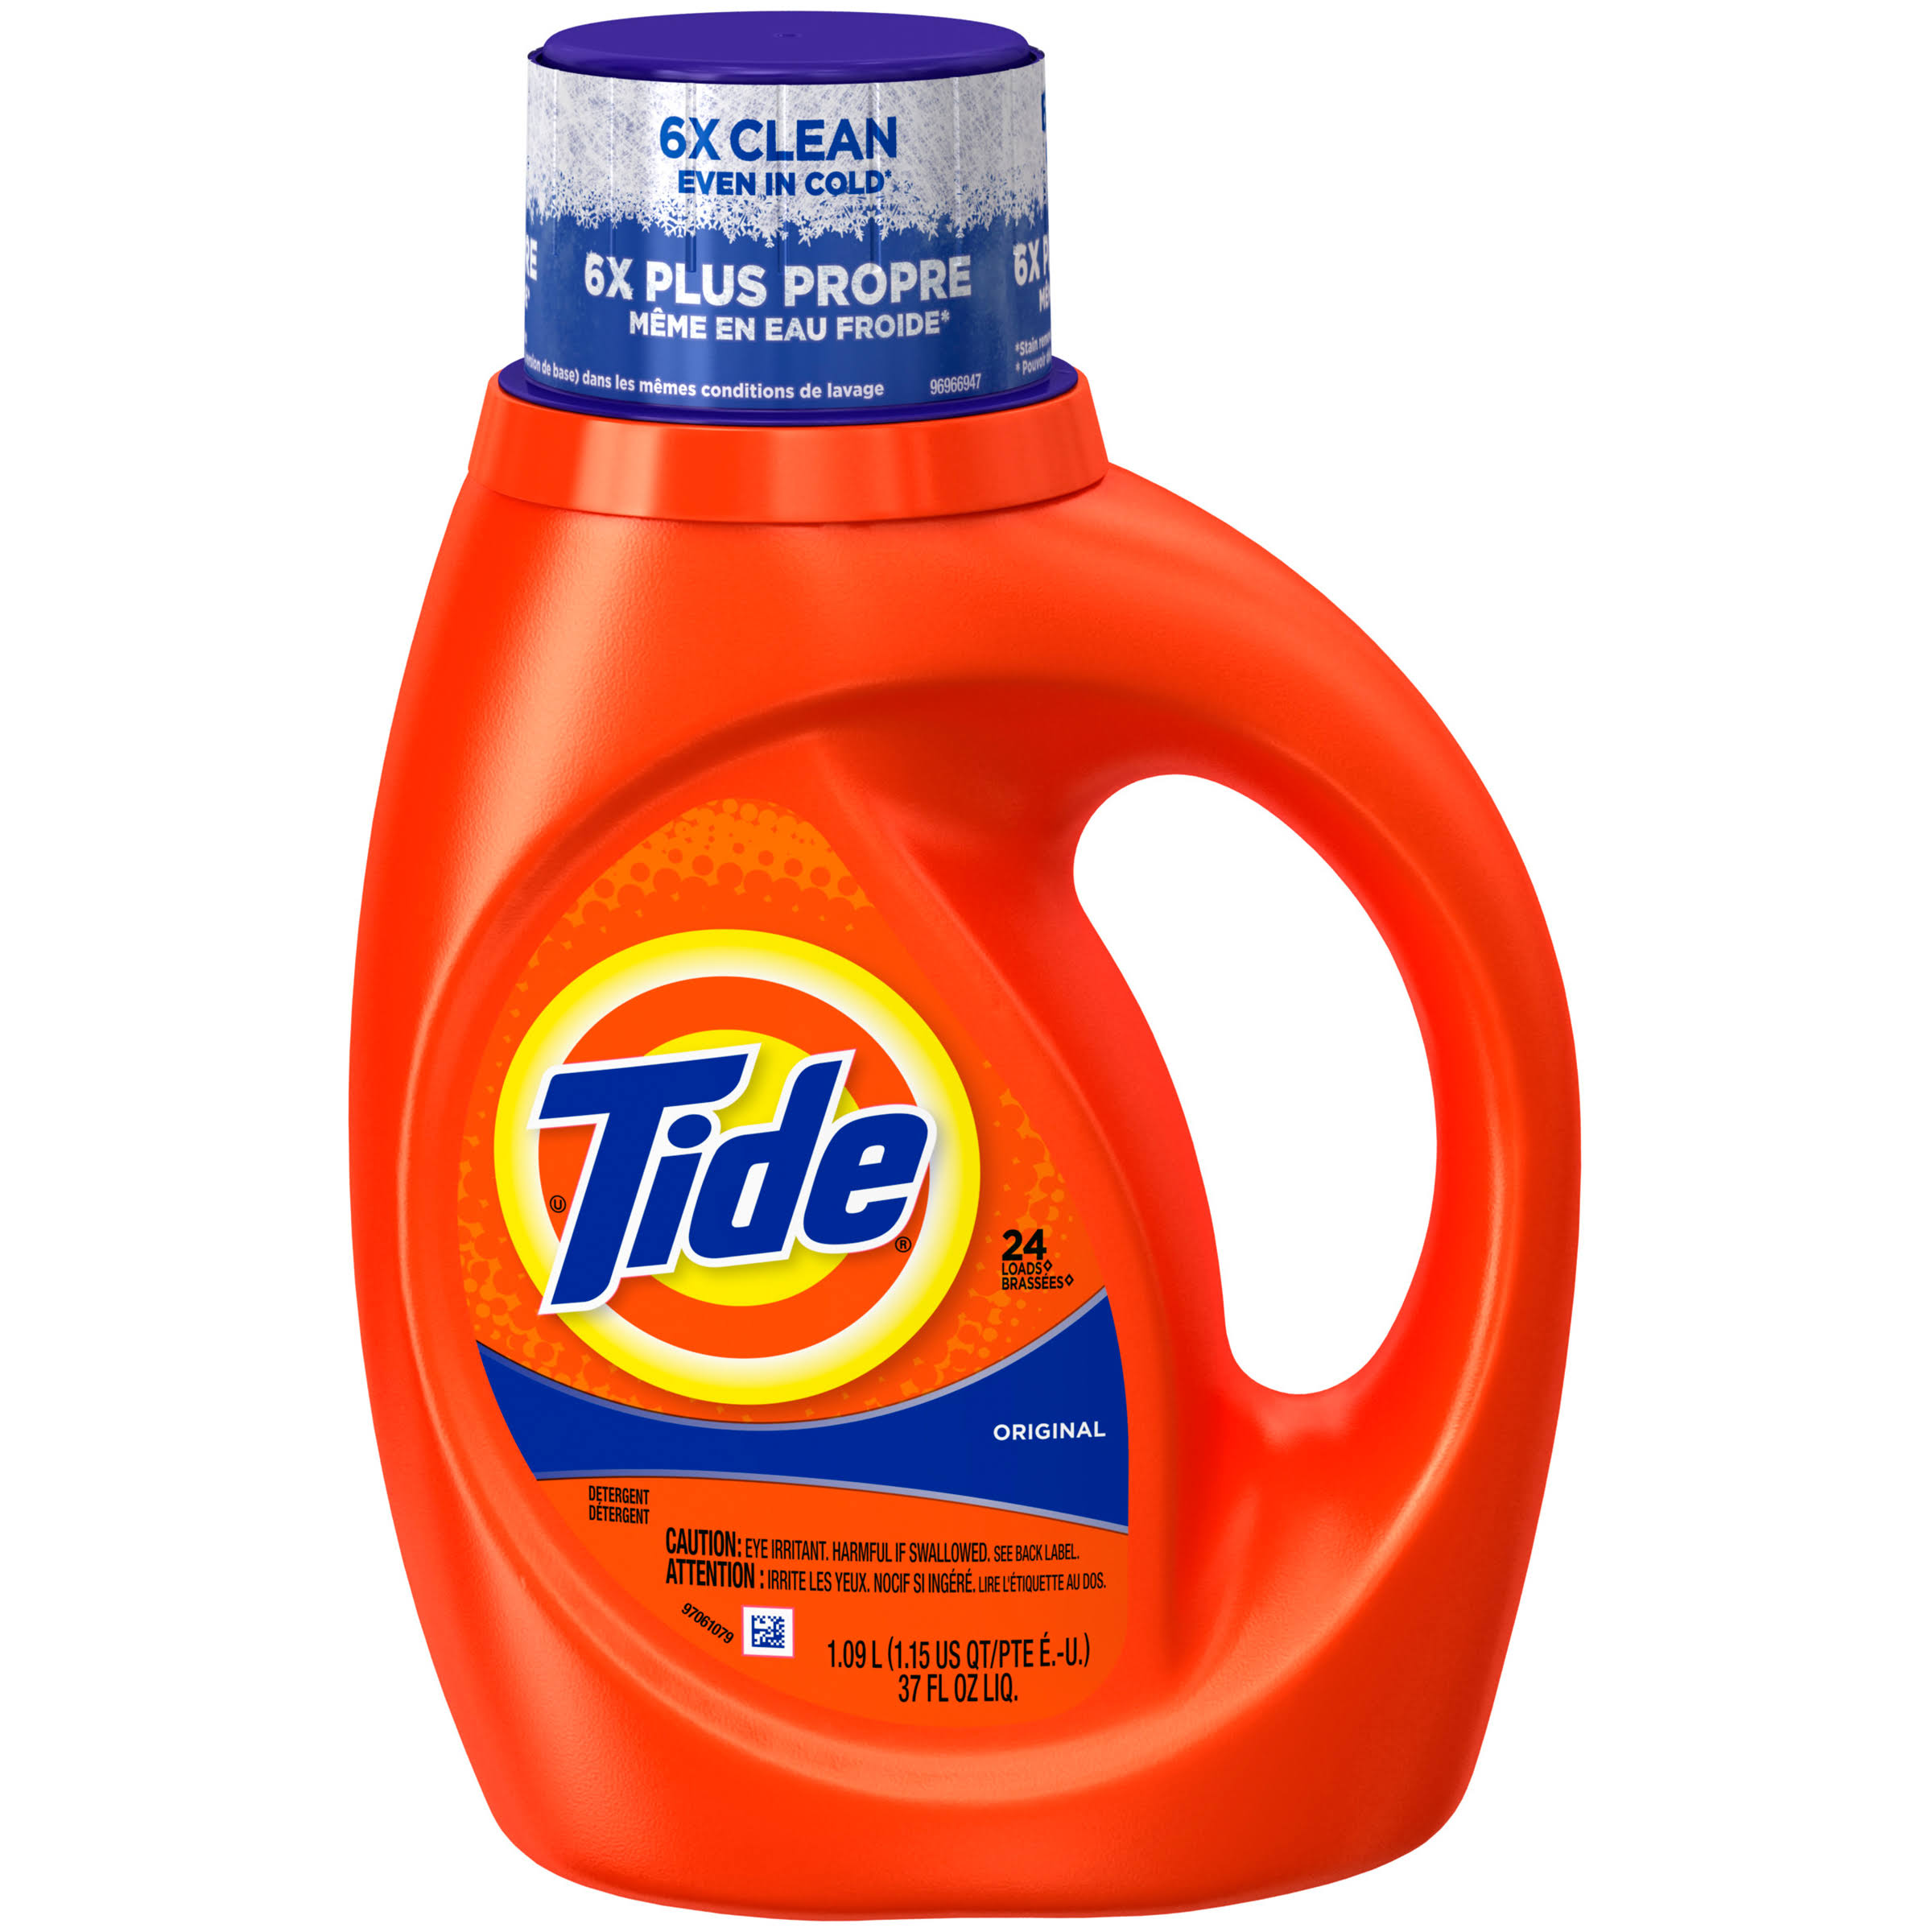 Tide Liquid Laundry Detergent, Original, 24 Loads 37 fl oz